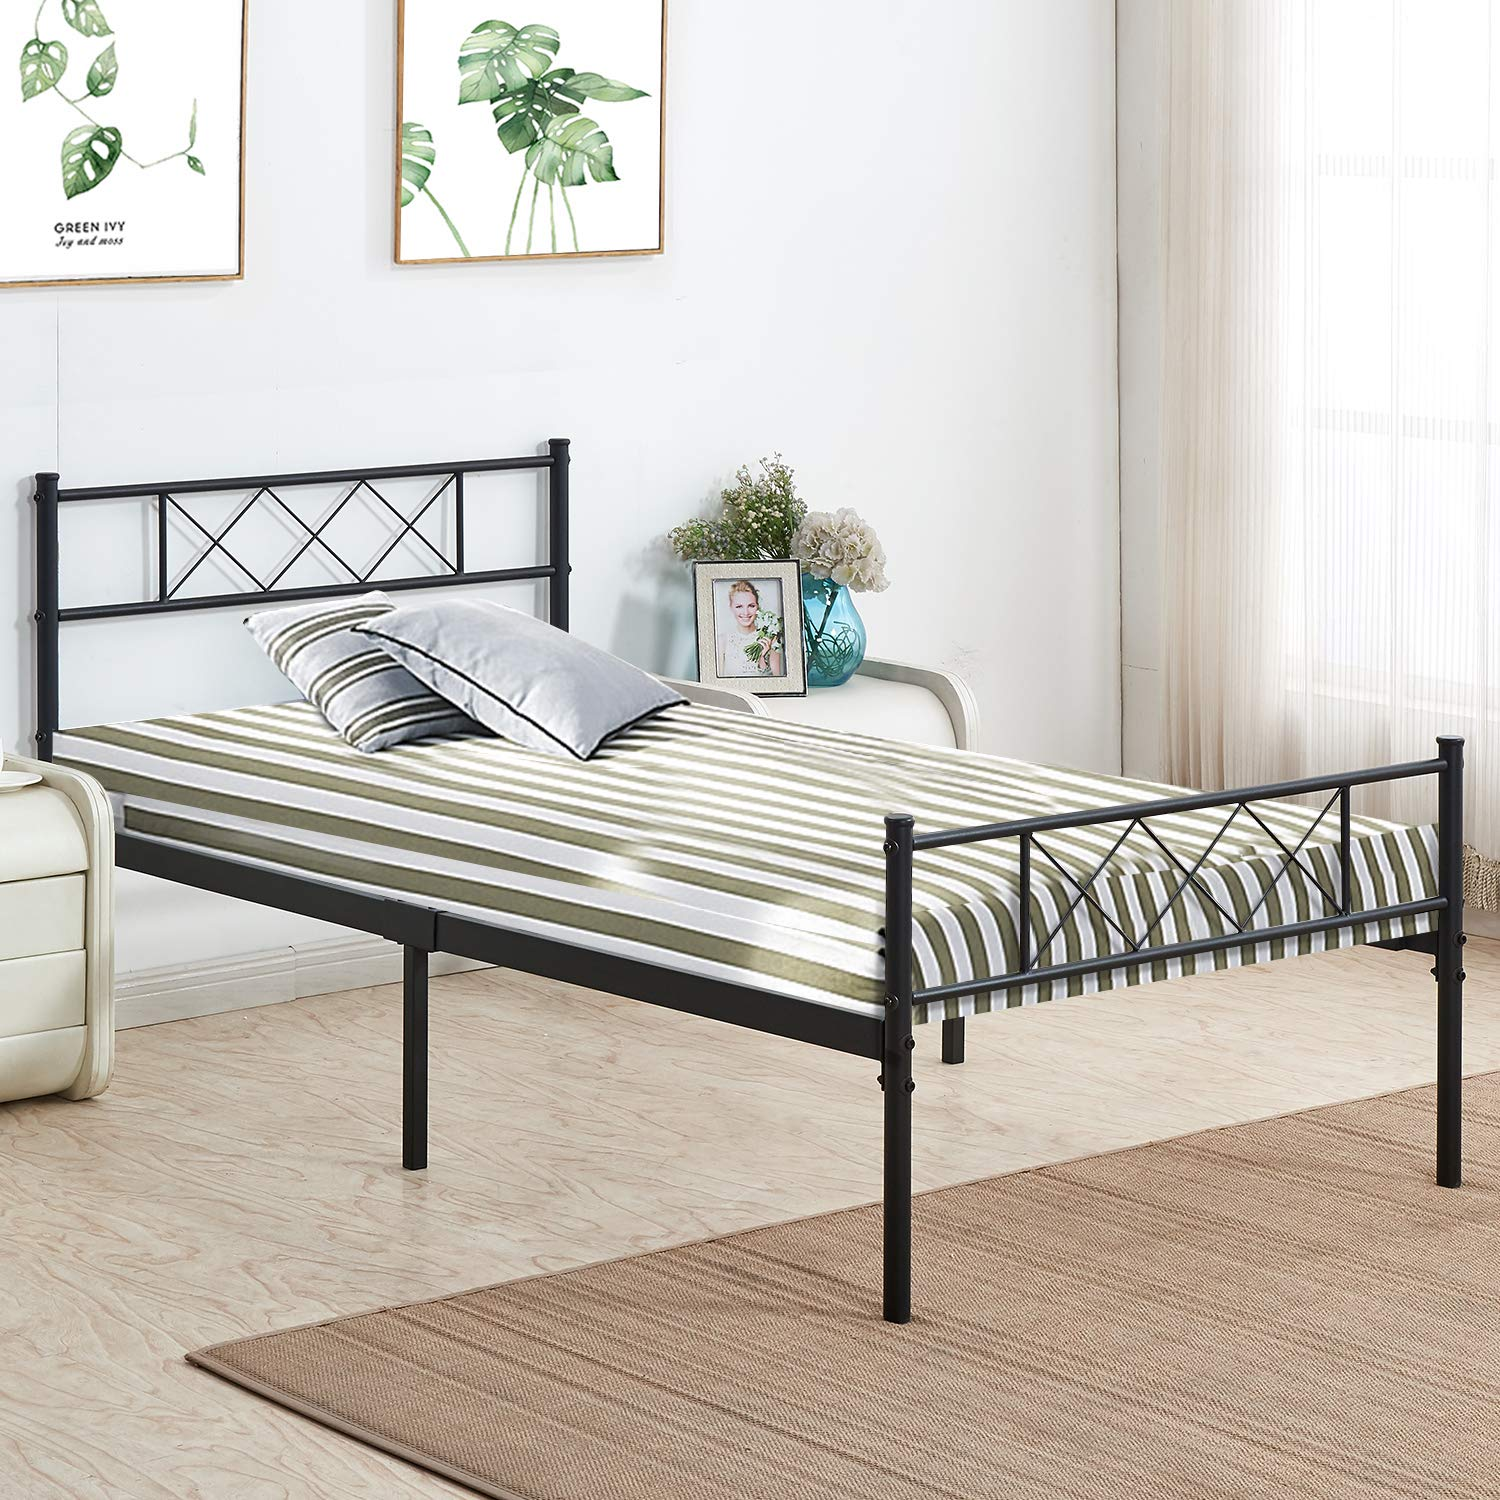 VECELO Metal Platform Bed Frame Mattress Foundation with Headboard & Footboard/Firm Support & Easy Set up Structure, Twin, Black by VECELO